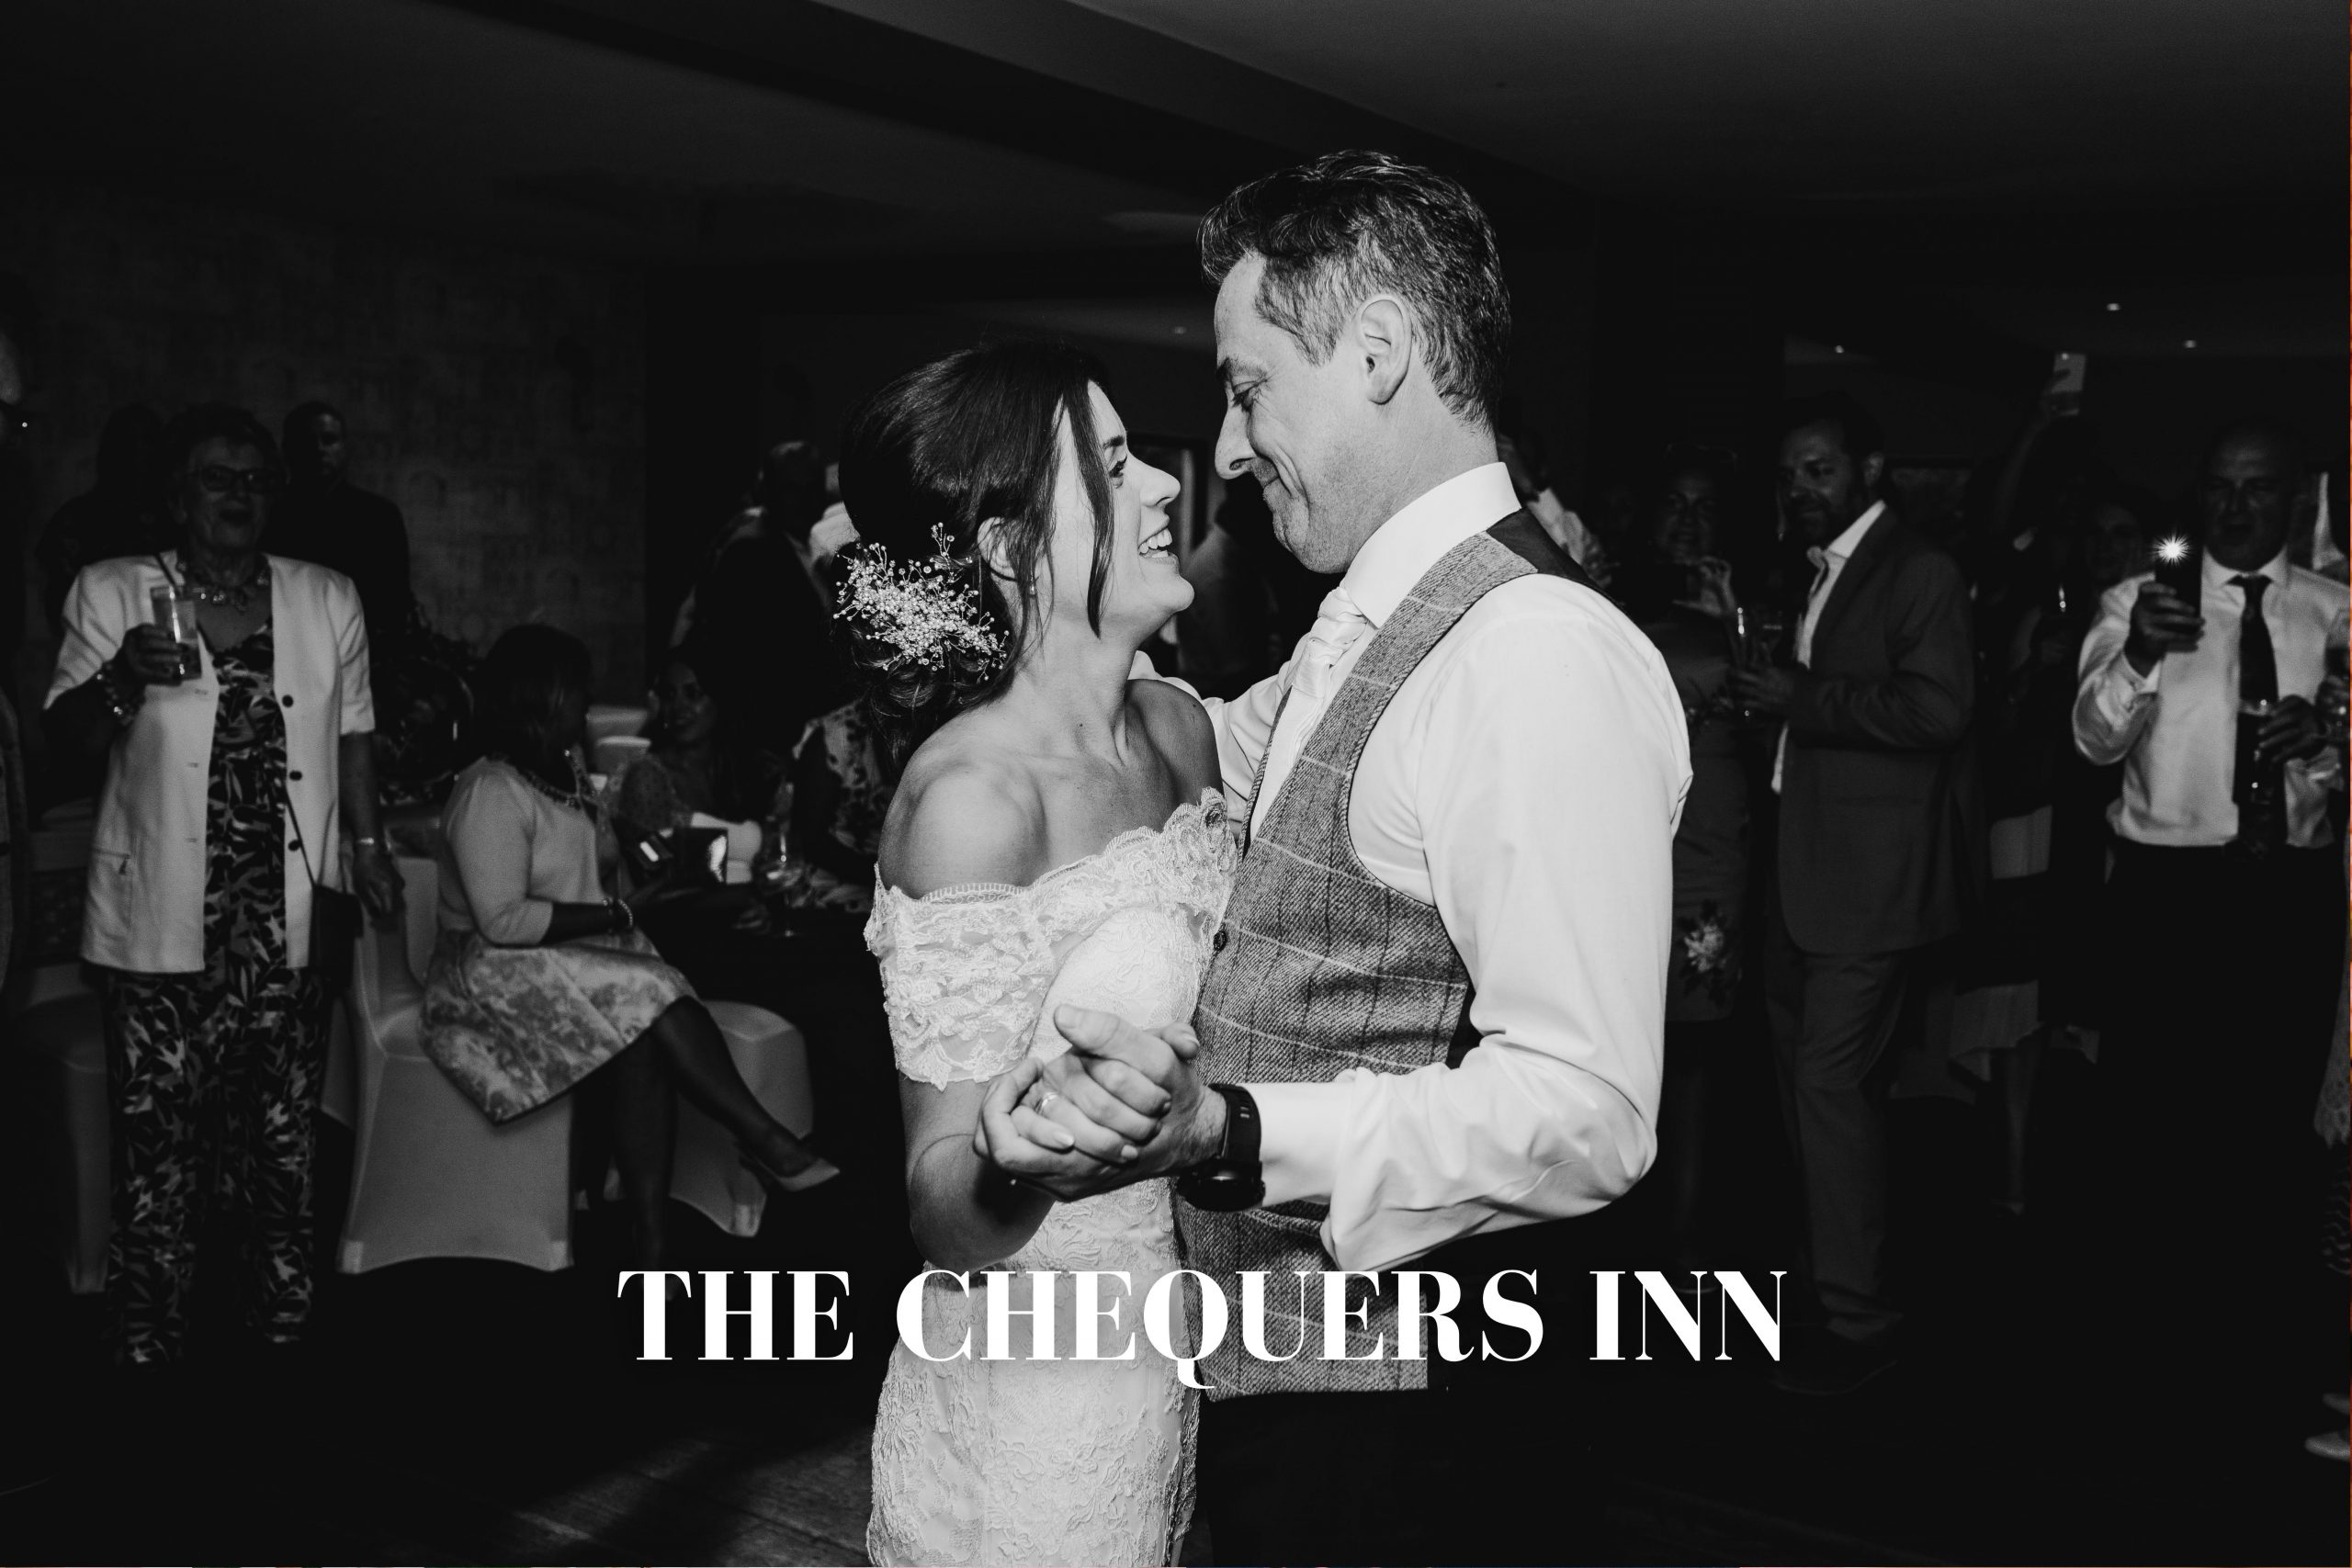 Wedding Photography at the Chequers Inn